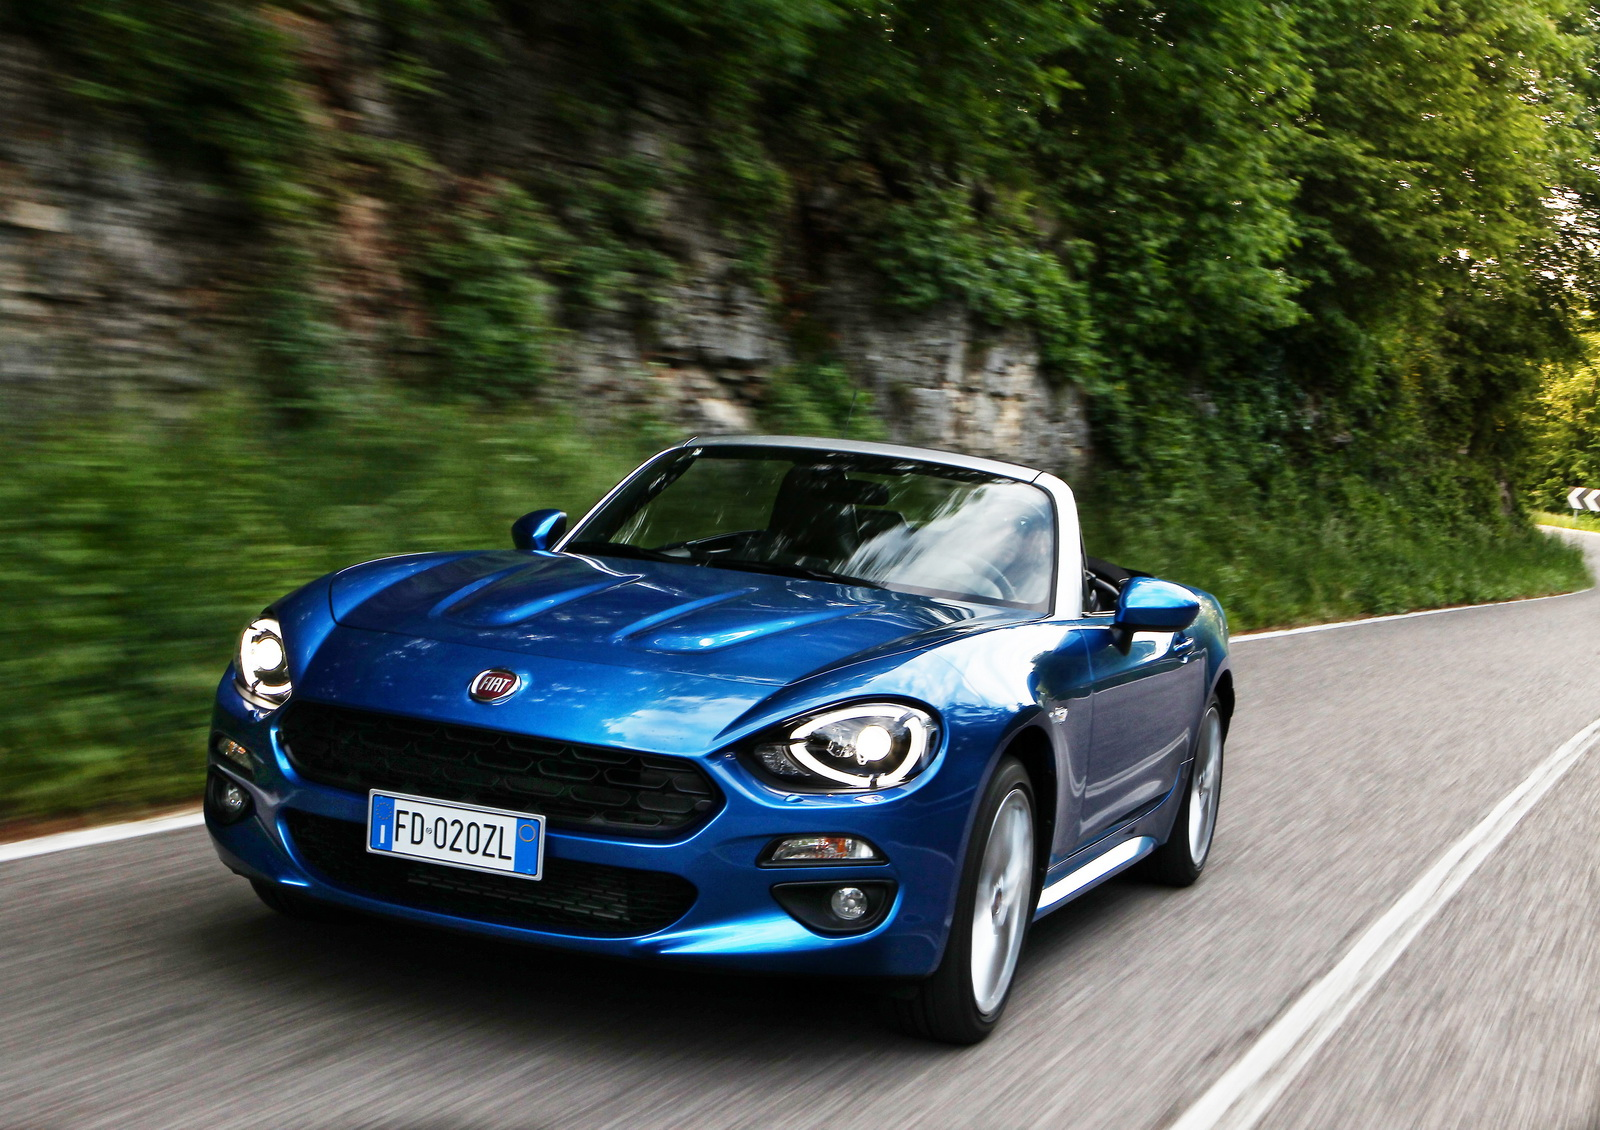 new fiat 124 spider officially launched in europe 60 photos carscoops. Black Bedroom Furniture Sets. Home Design Ideas